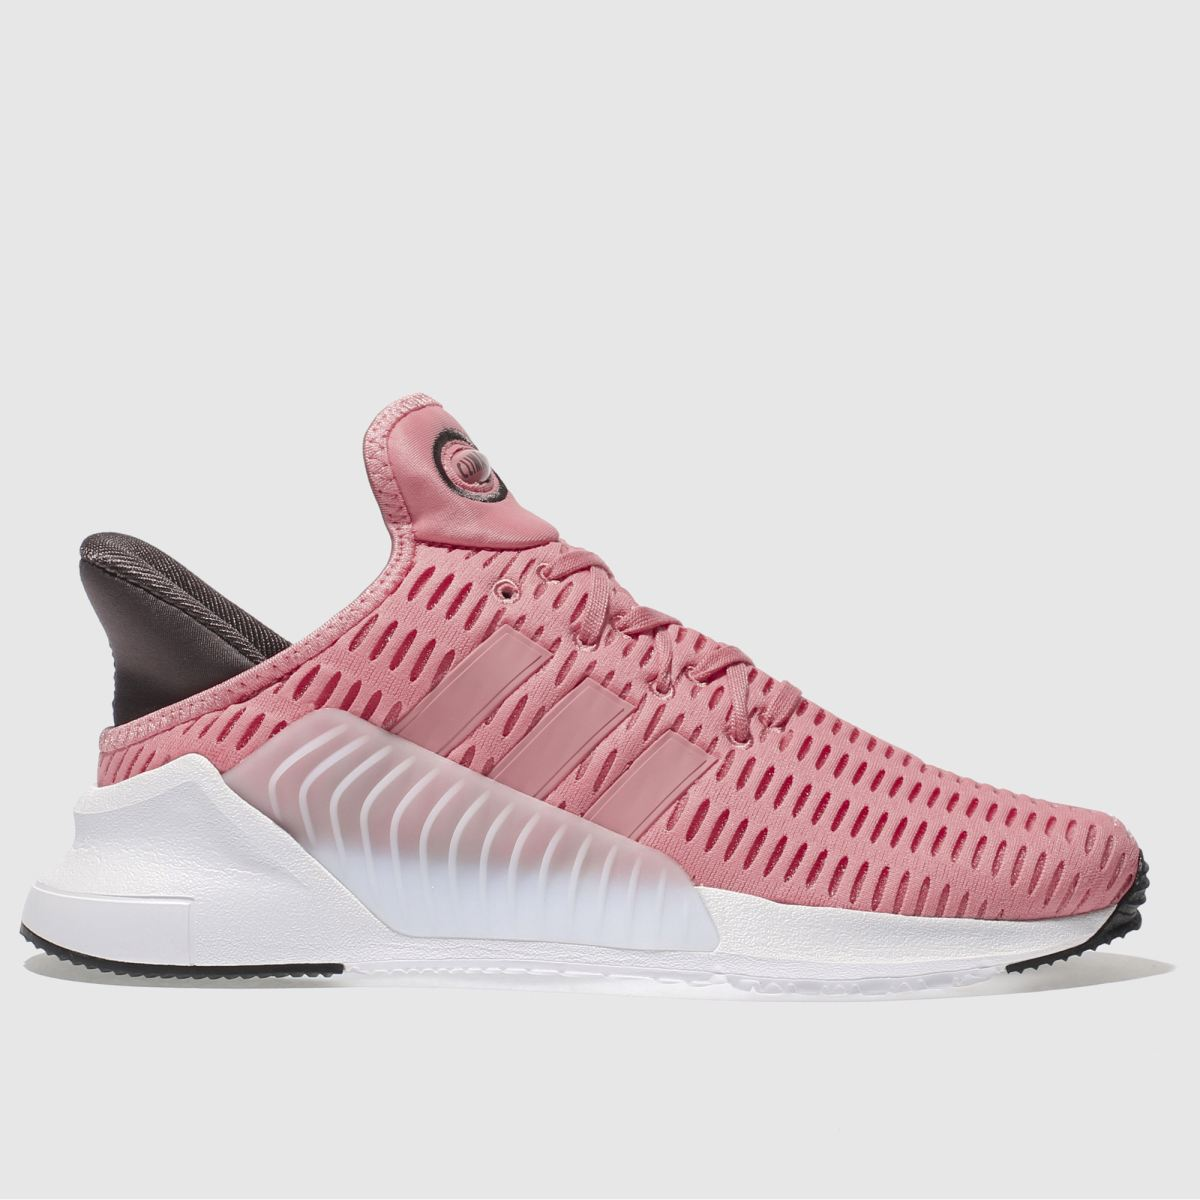 adidas peach climacool 02/17 trainers